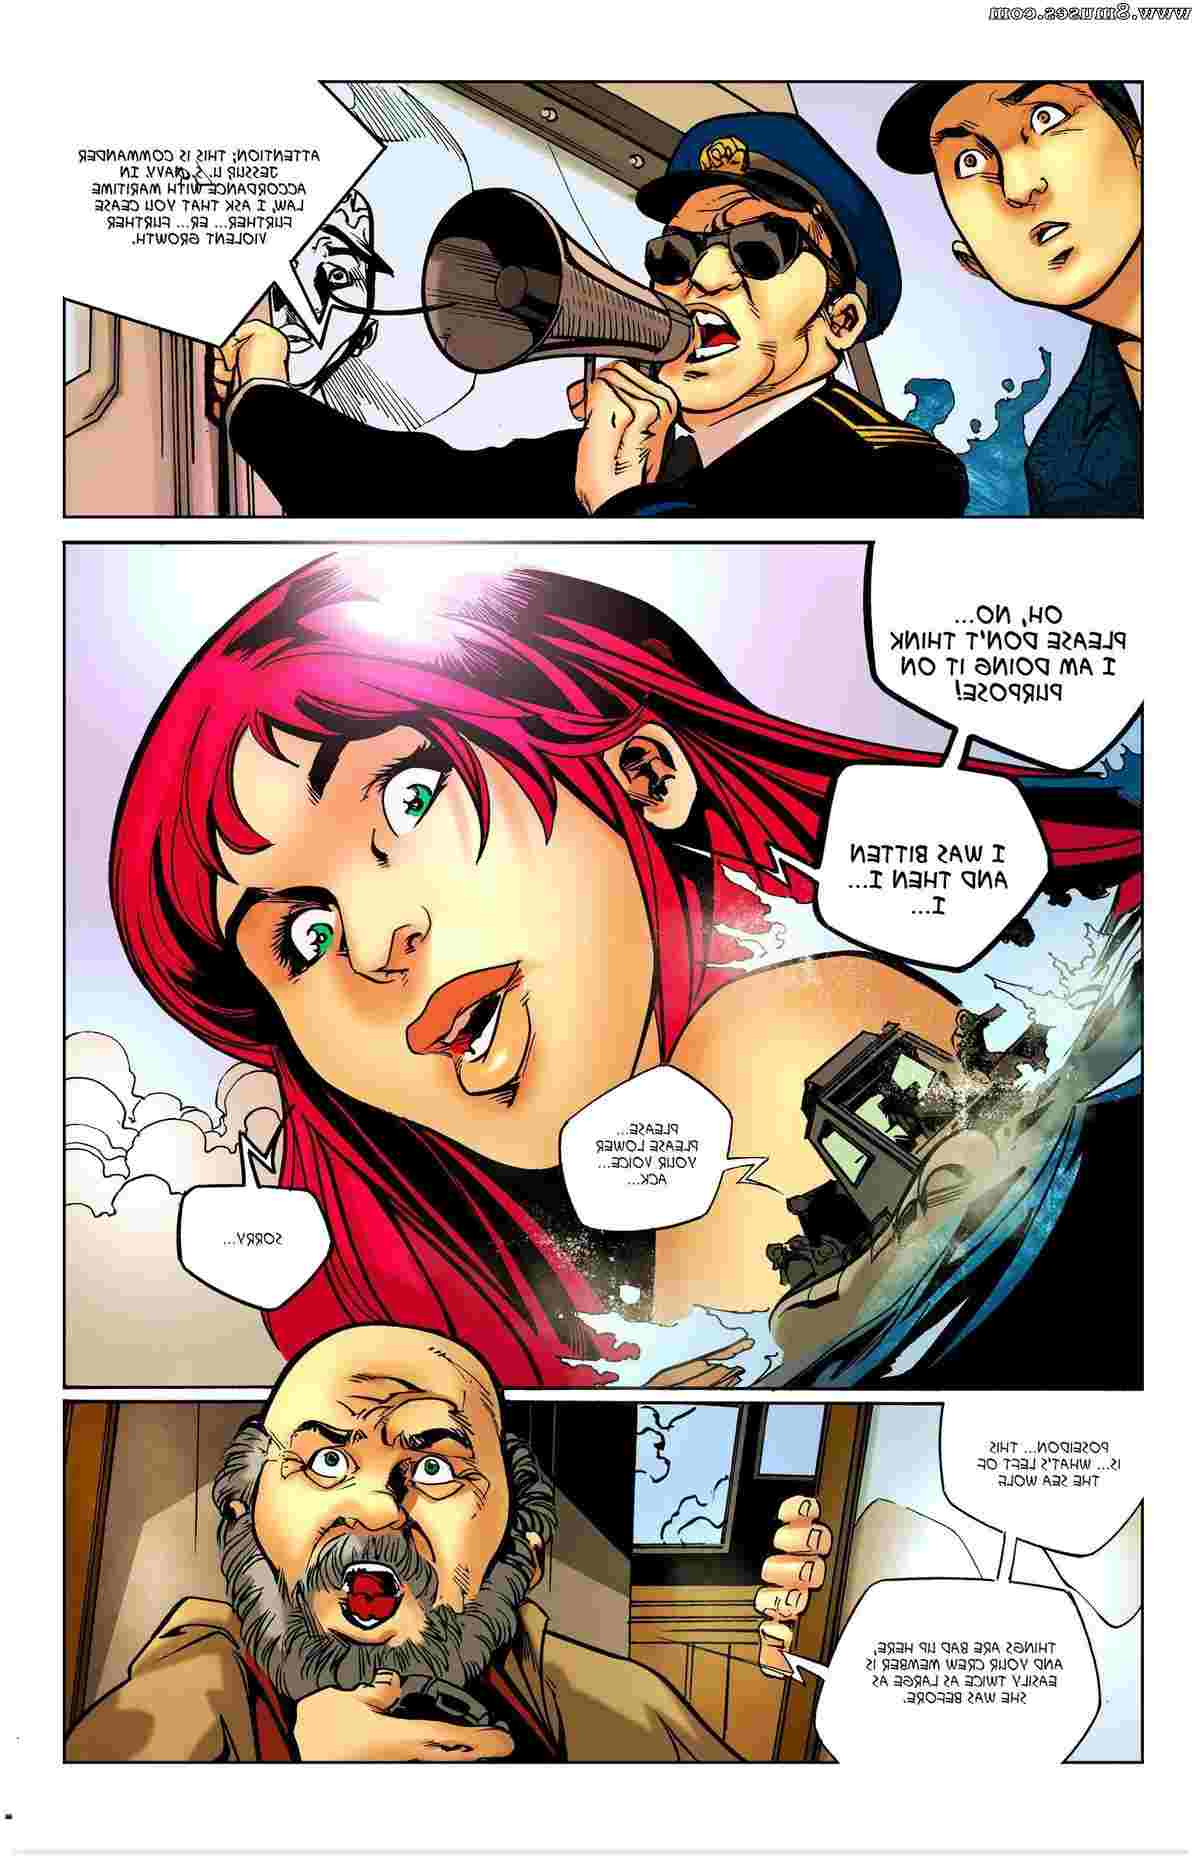 Giantess-Club-Comics/Bubbling-Up-from-the-Abyss Bubbling_Up_from_the_Abyss__8muses_-_Sex_and_Porn_Comics_59.jpg